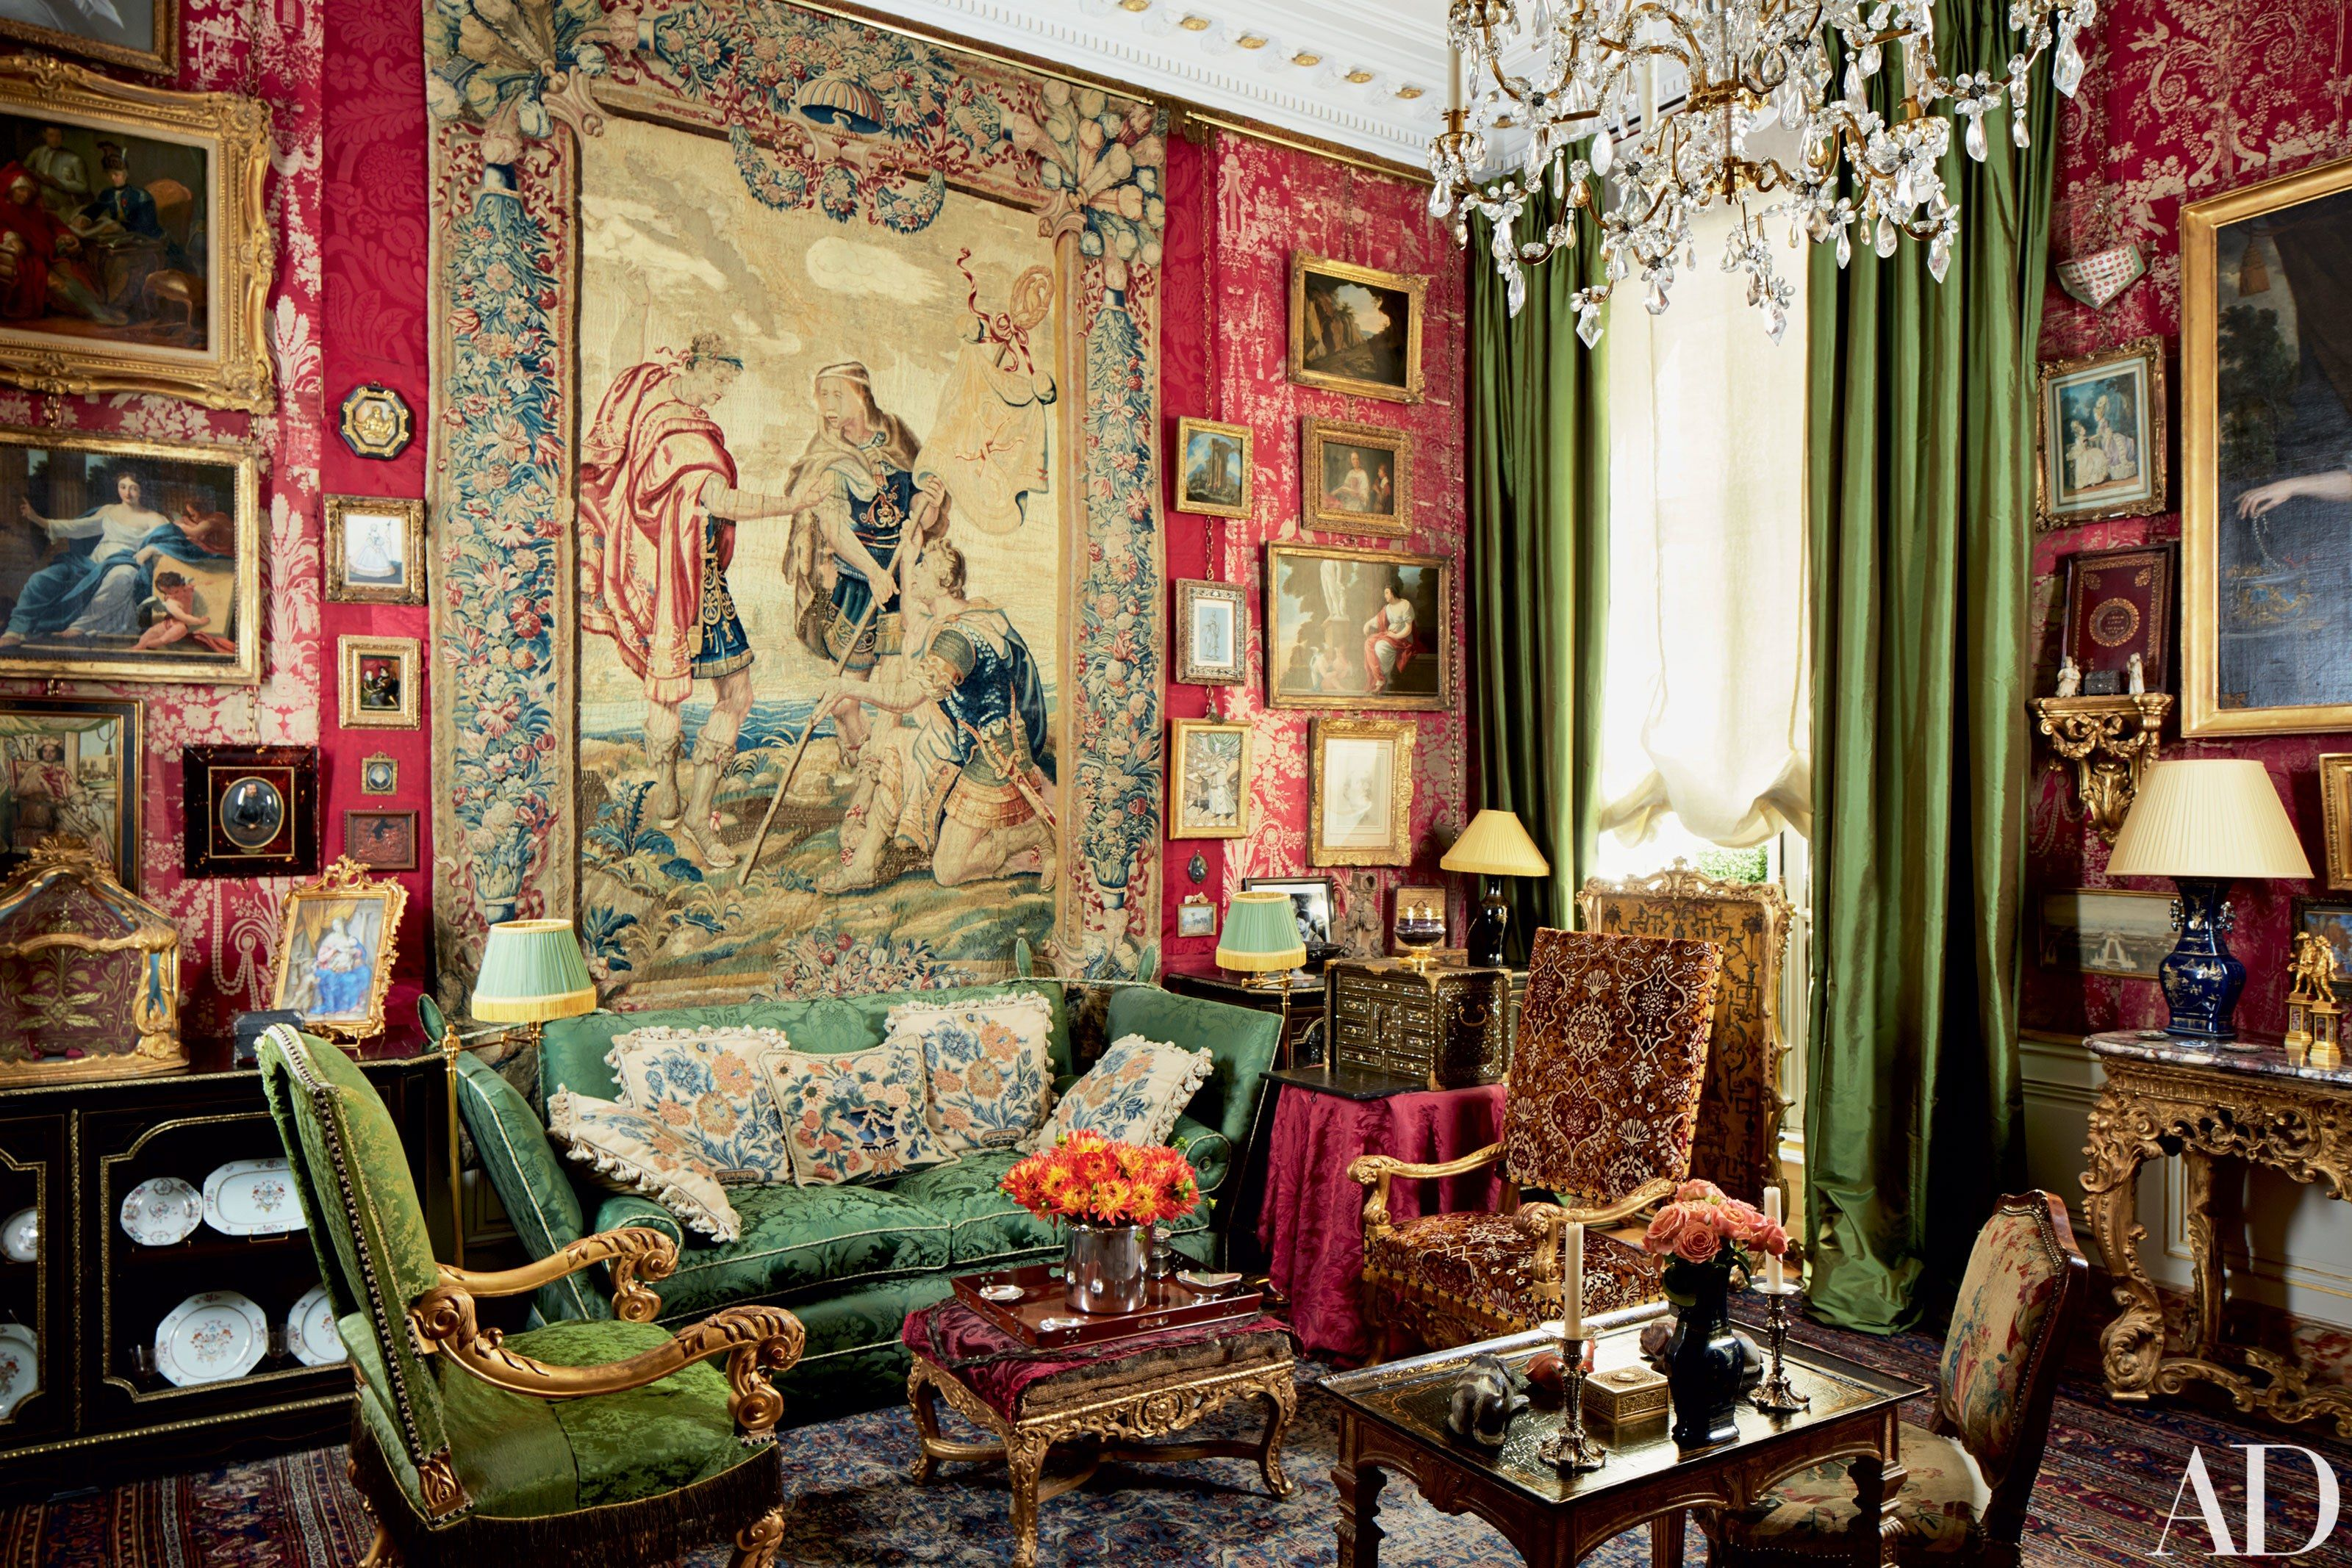 Jacques Garcia Conjures an Atmosphere of Opulence and Drama in an ...